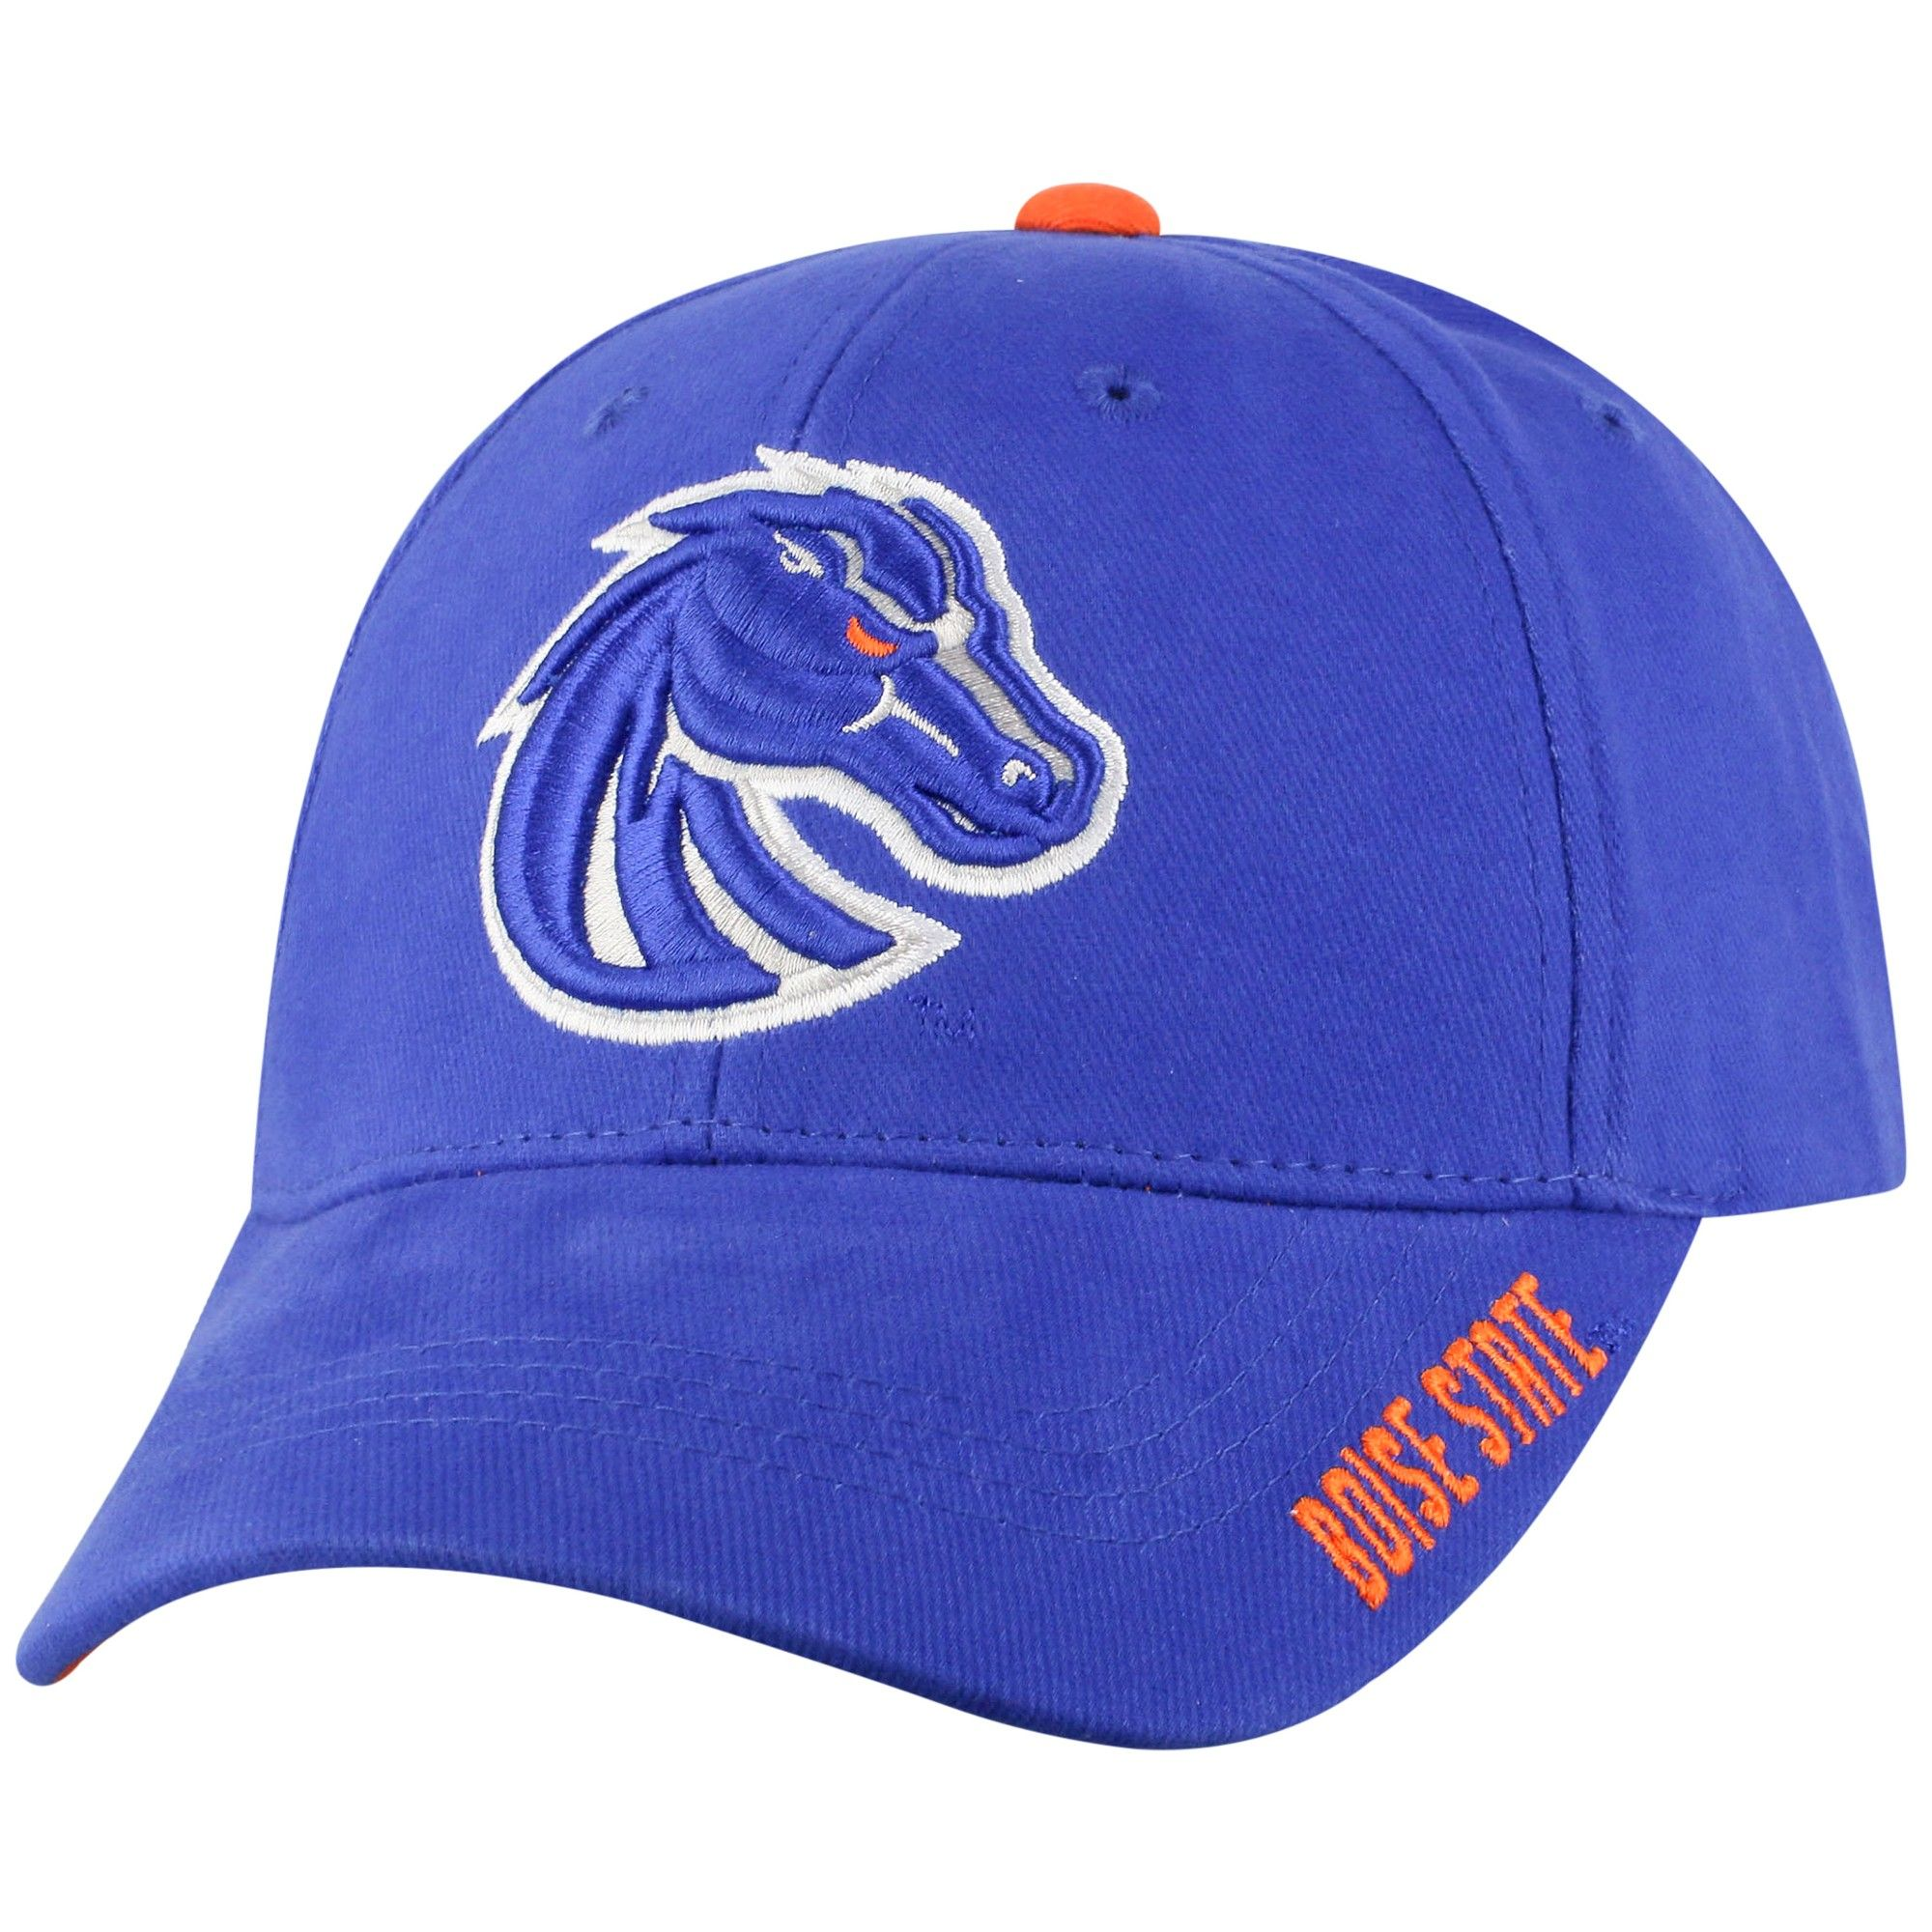 d4b856bcdccf00 NCAA Men's Boise State Broncos Velcro Baseball Hat | Products ...